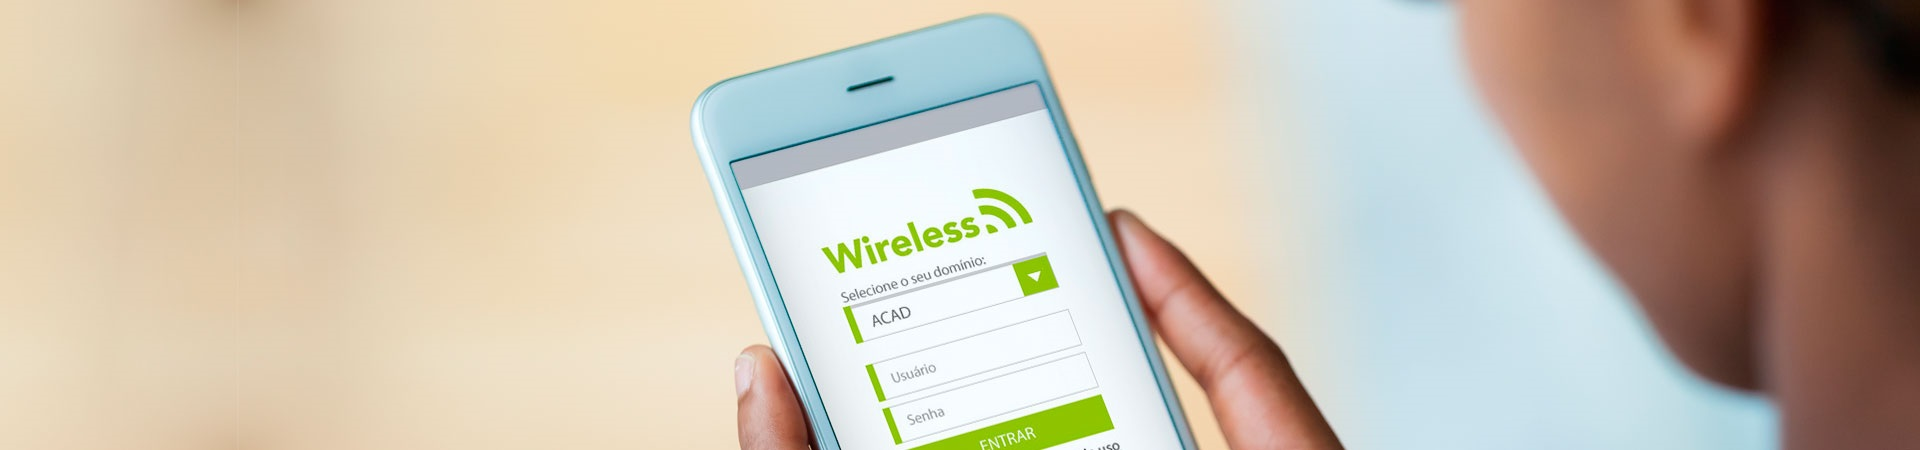 Banner de topo - Wireless